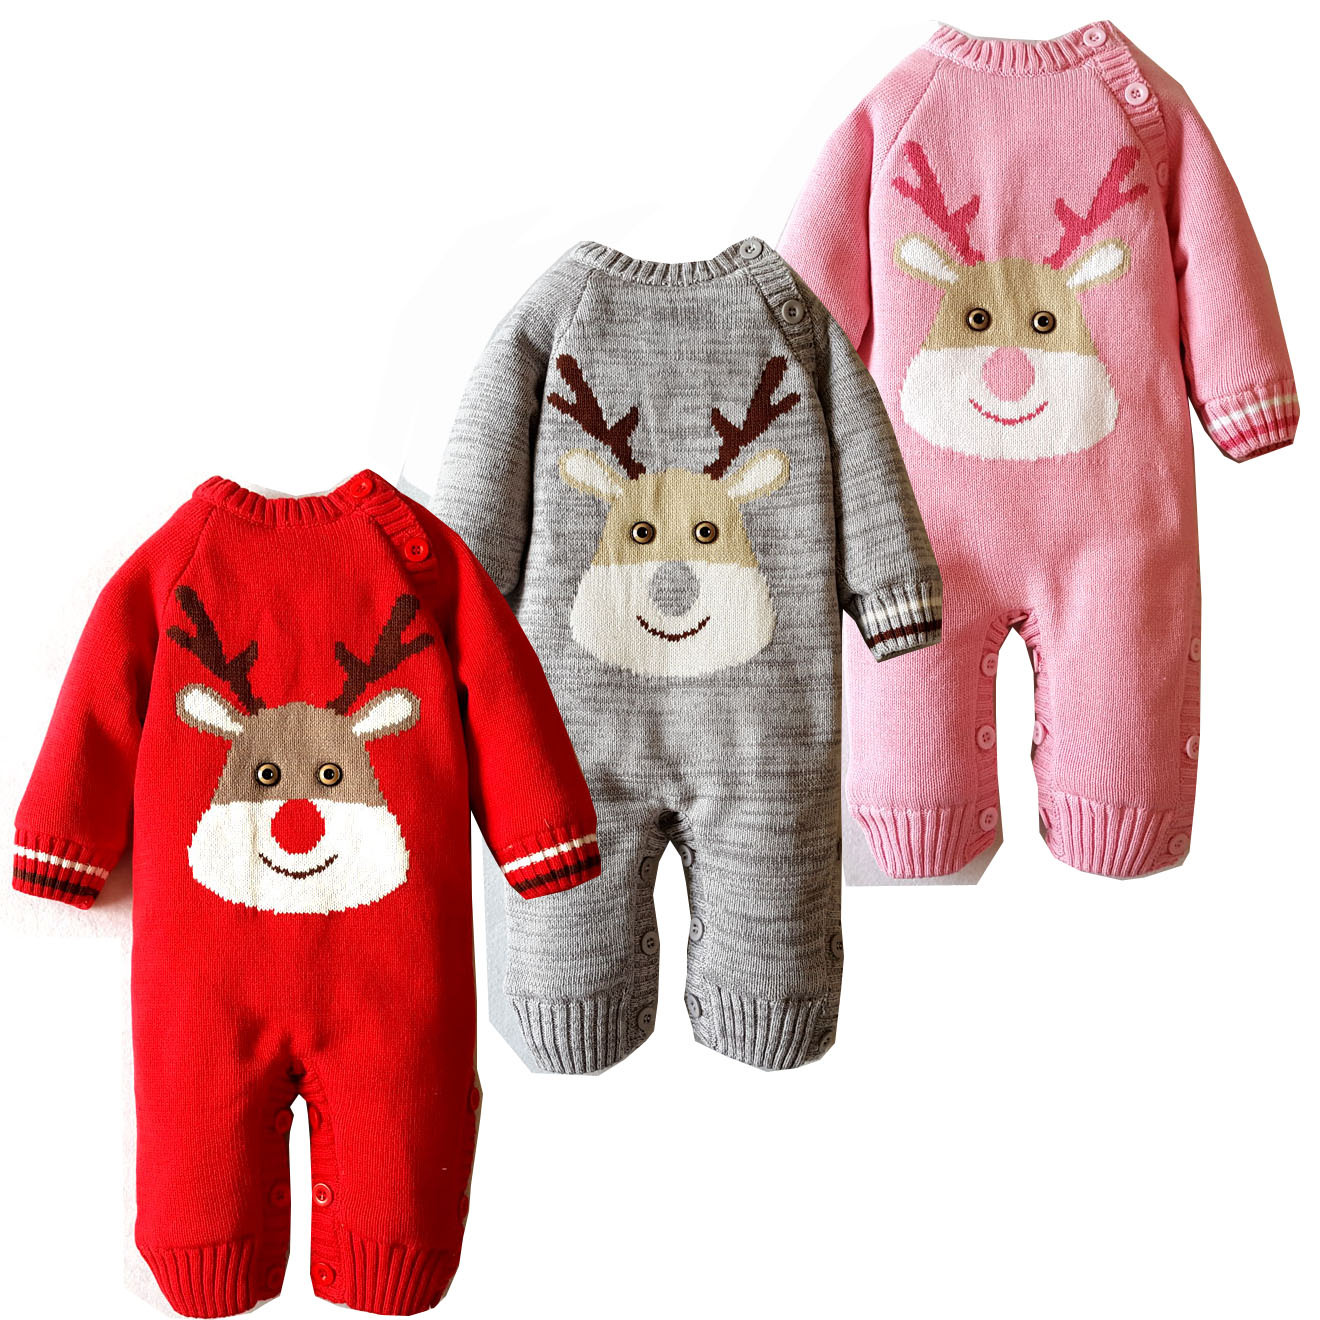 2018 autumn winter baby boy girl Rompers Christmas Newborn  Clothes Knitted Sweater Infant Jumpsuits Outerwear Kid Boy Clothes newborn baby rompers autumn winter package feet baby clothes polar fleece infant overalls baby boy girl jumpsuits clothing set